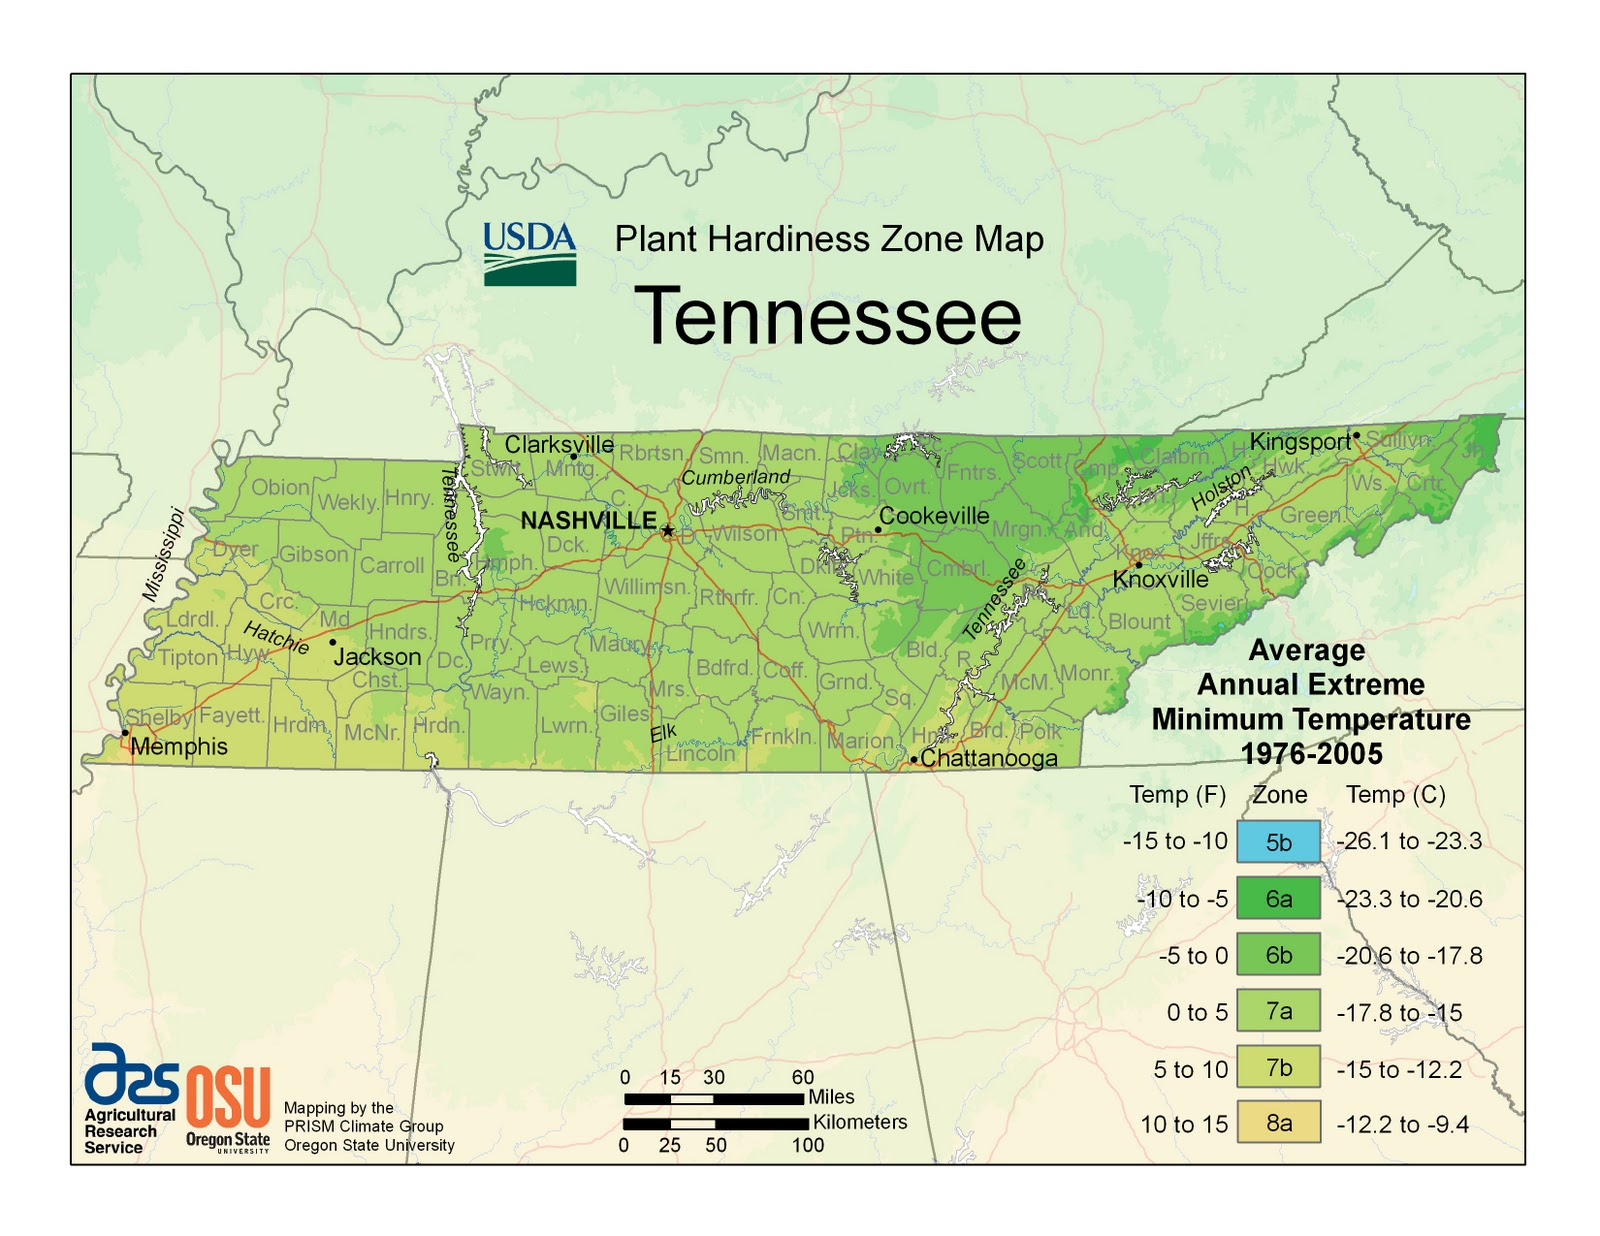 2012 USDA Plant Hardiness Zone Map - Growing The Home Garden